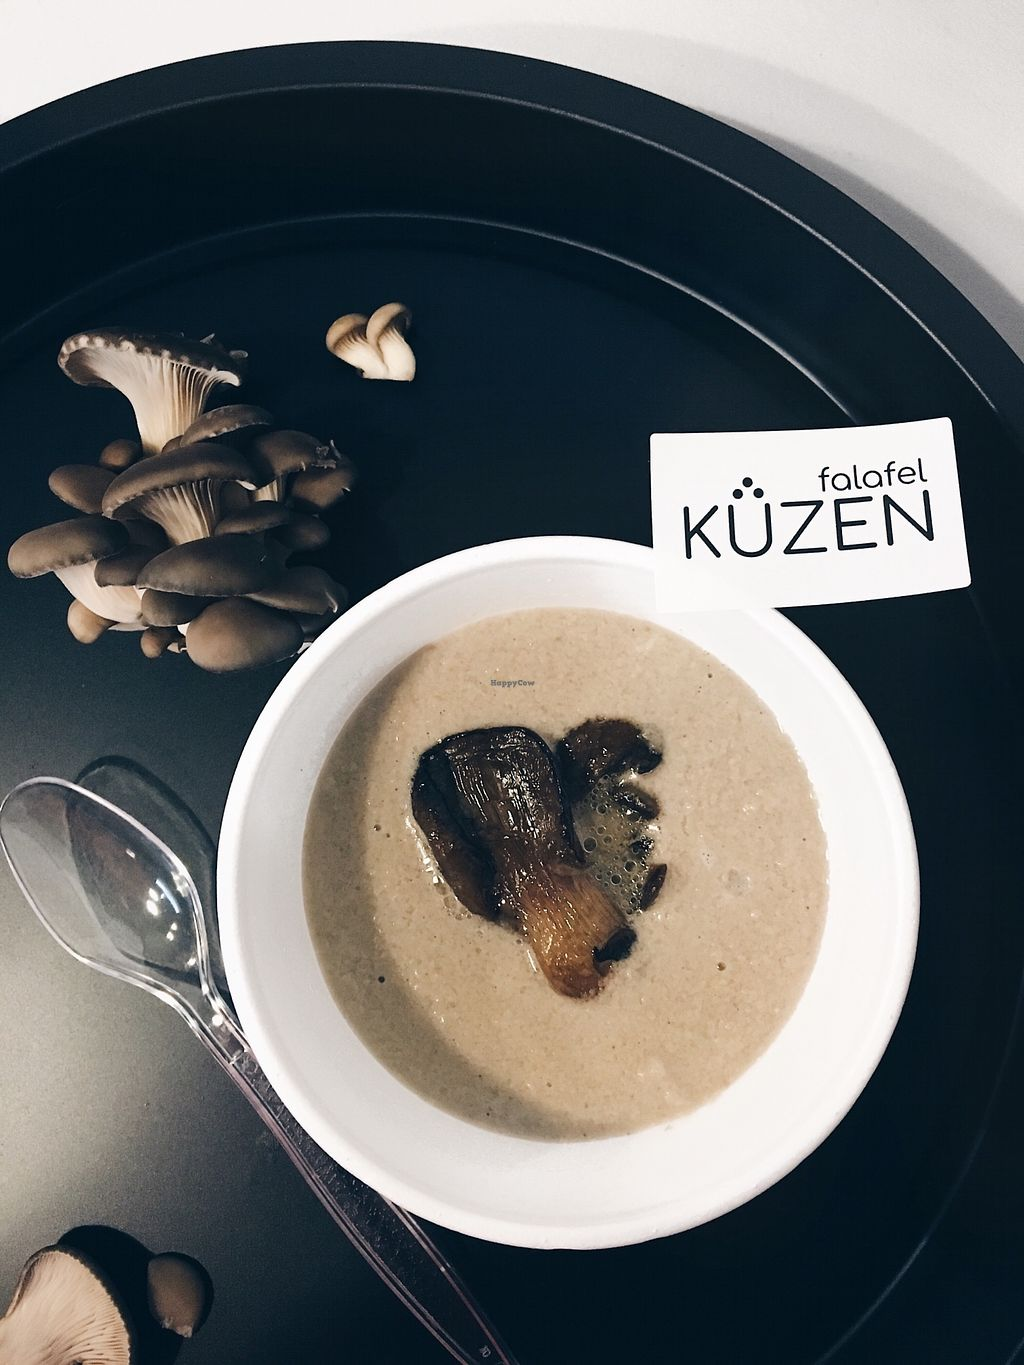 "Photo of Kuzen Falafel  by <a href=""/members/profile/EugeniaTsy"">EugeniaTsy</a> <br/>mushroom cream-soup <br/> February 5, 2018  - <a href='/contact/abuse/image/110939/355369'>Report</a>"